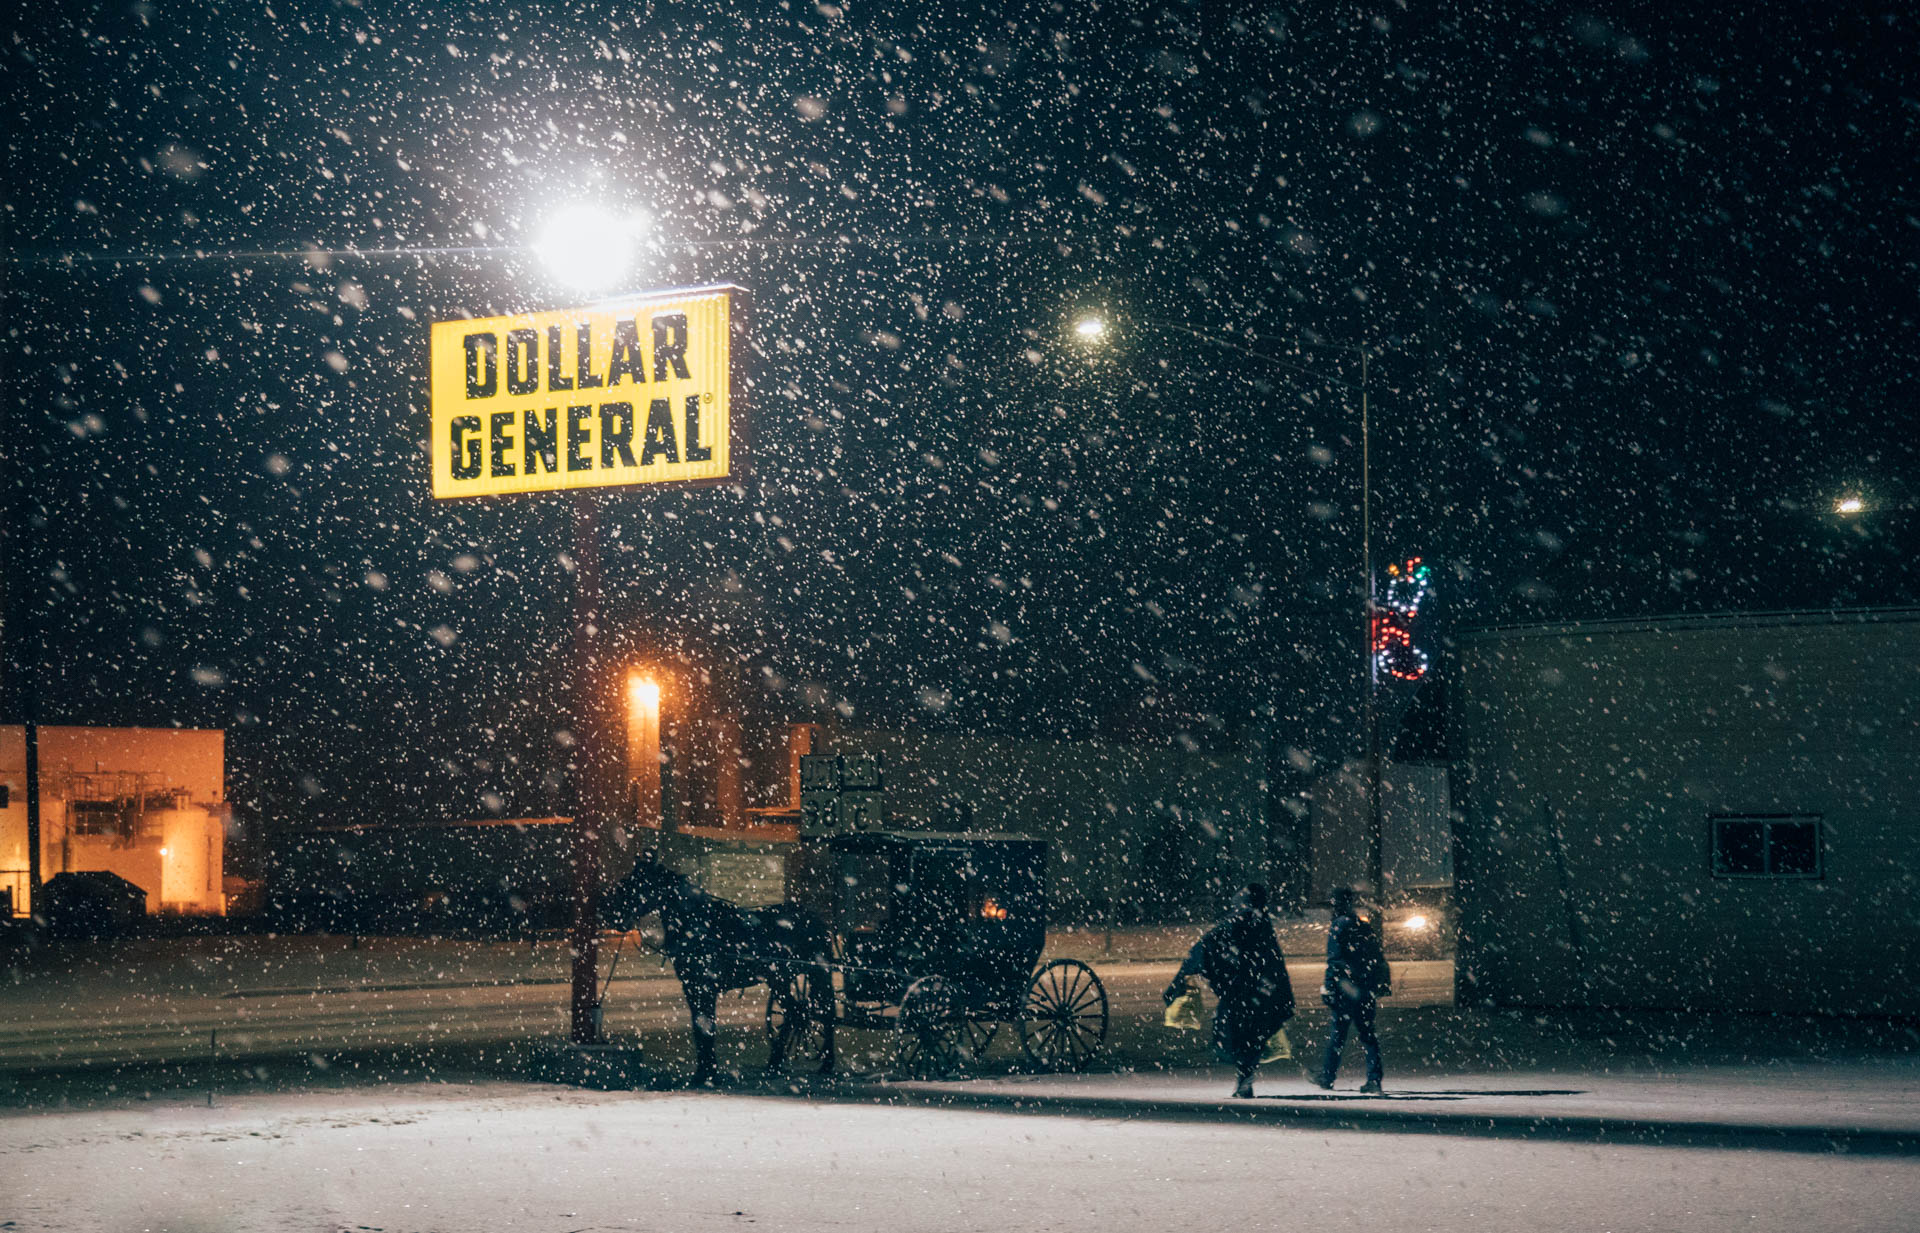 amish-horse-and-carriage-snowing-dollar-general-4655